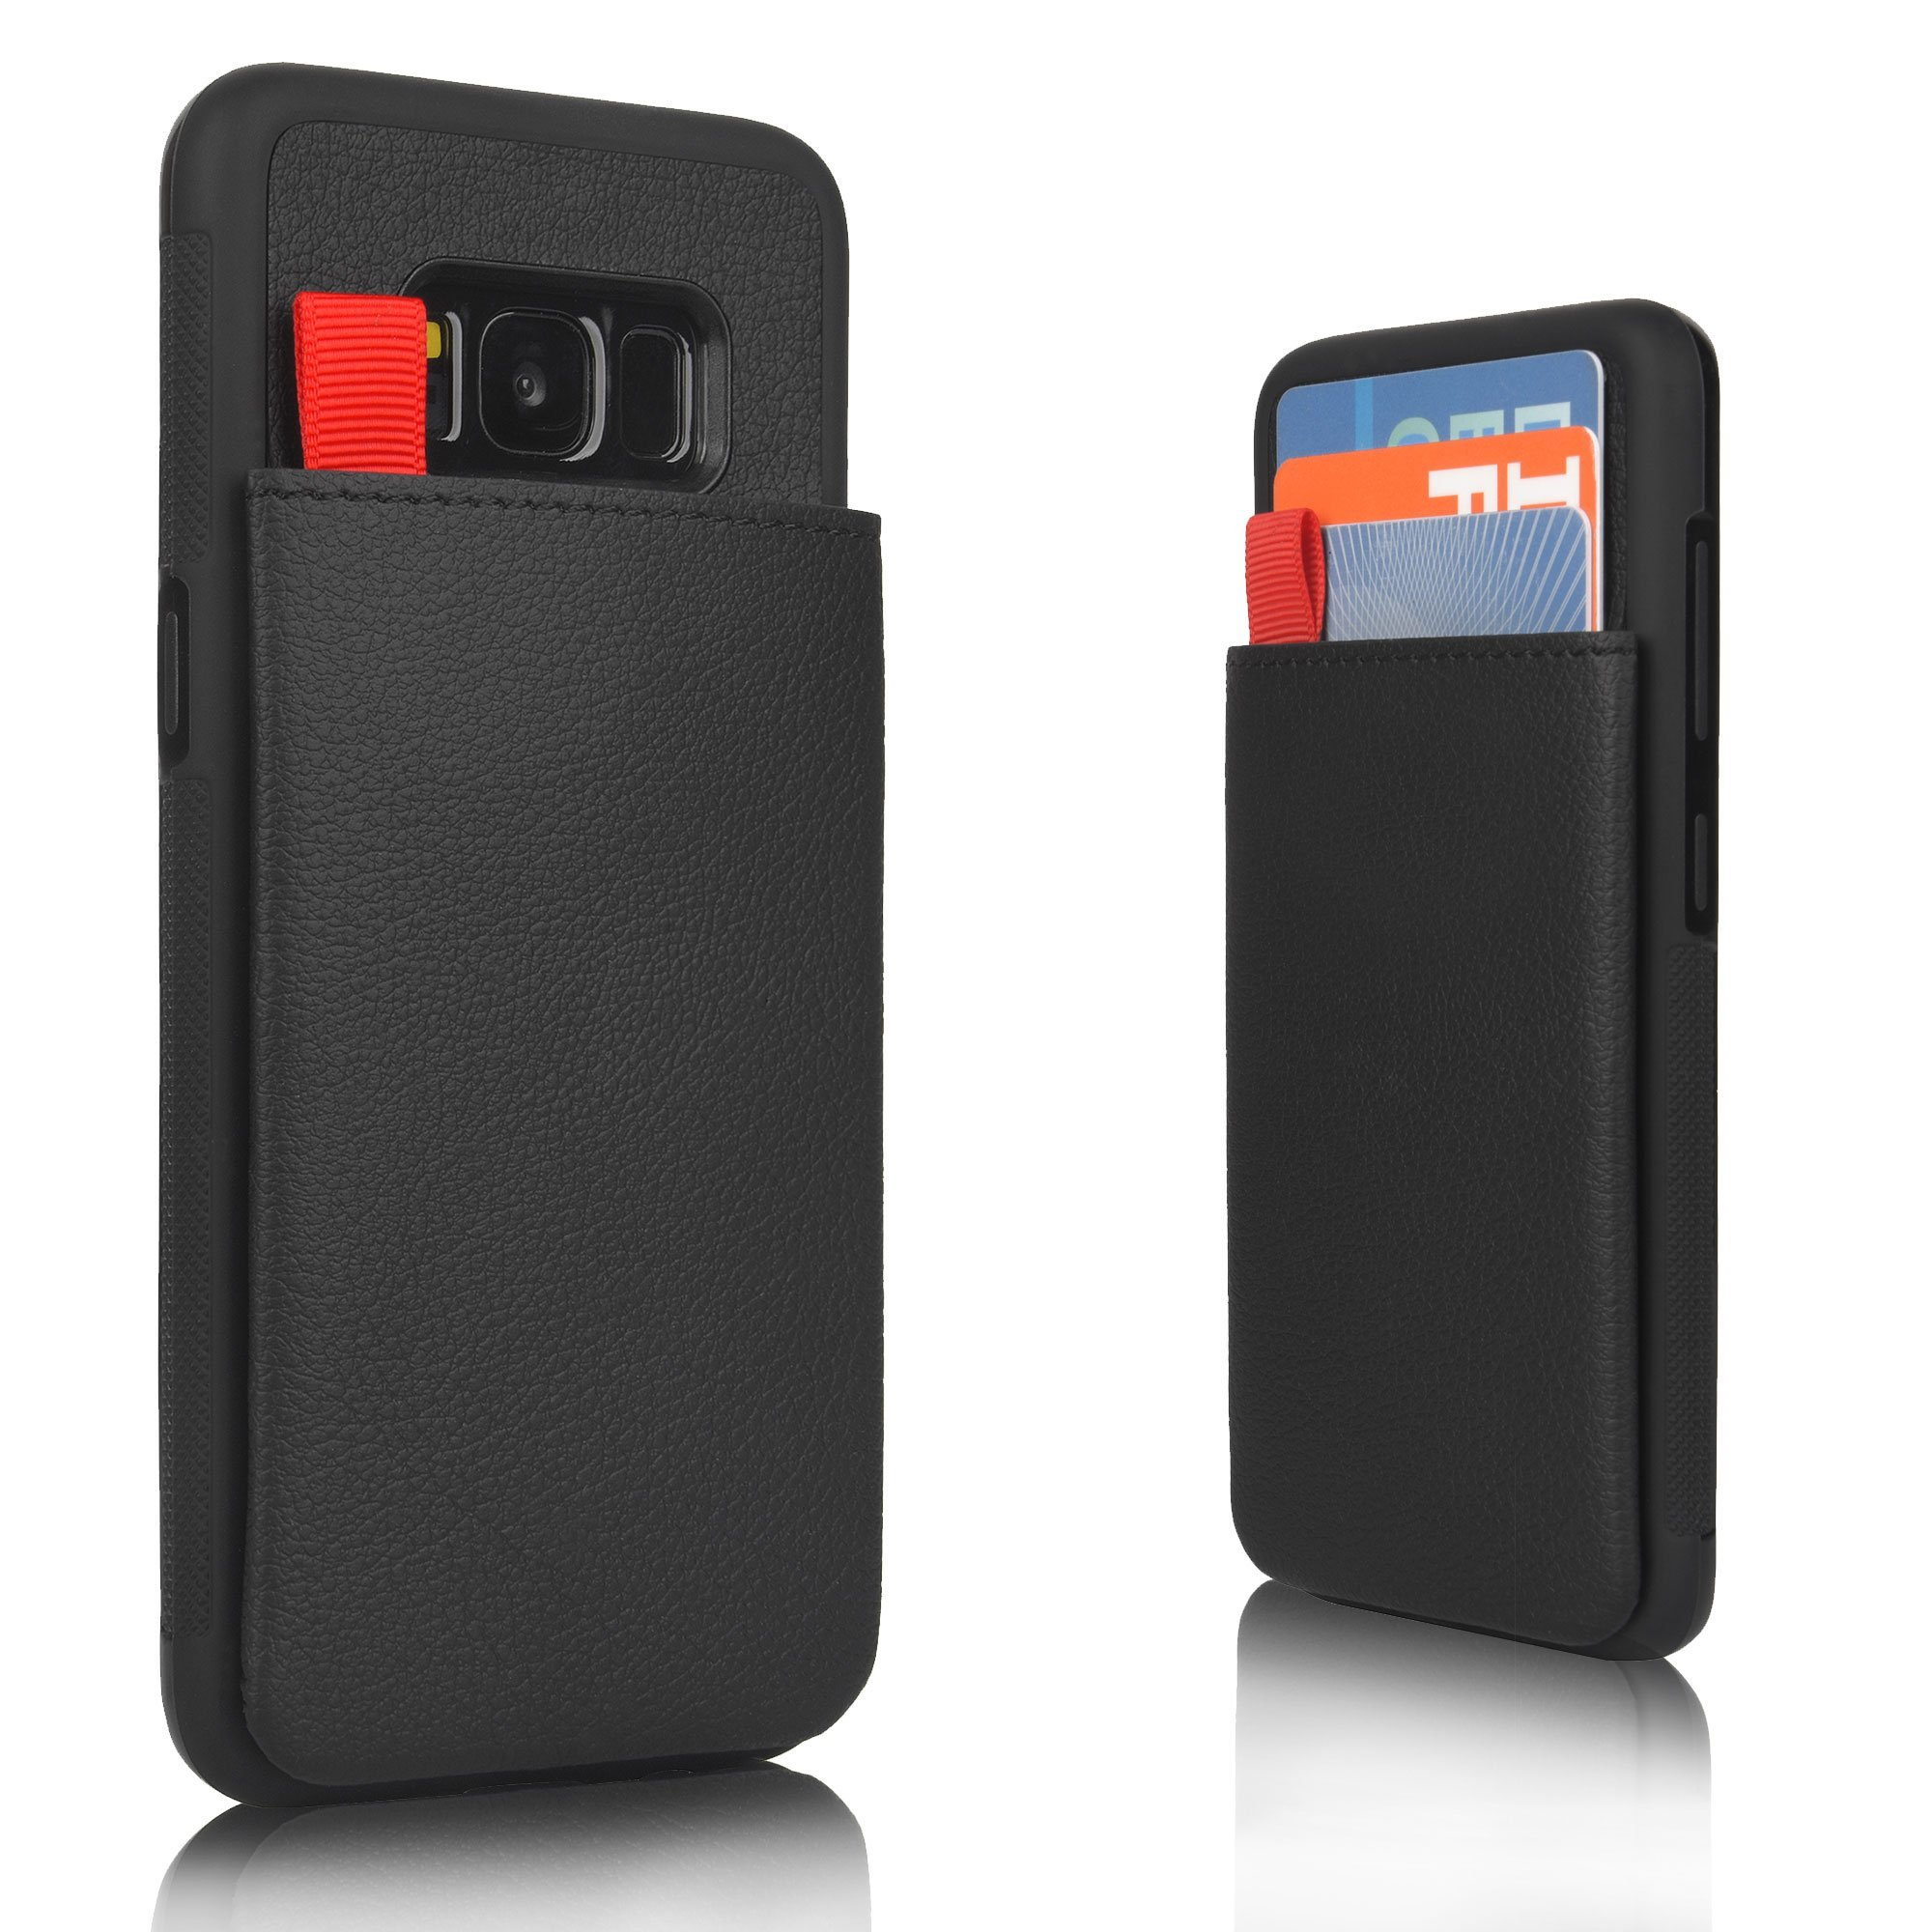 MANGATA Triton Leather Wallet case Compatible Samsung Galaxy S8 | Slide Out Hidden Wallet Pocket, Rugged Shell | Cruelty Free Leather | Credit Card Holder, Cash Pocket, Screen Protector (Black)